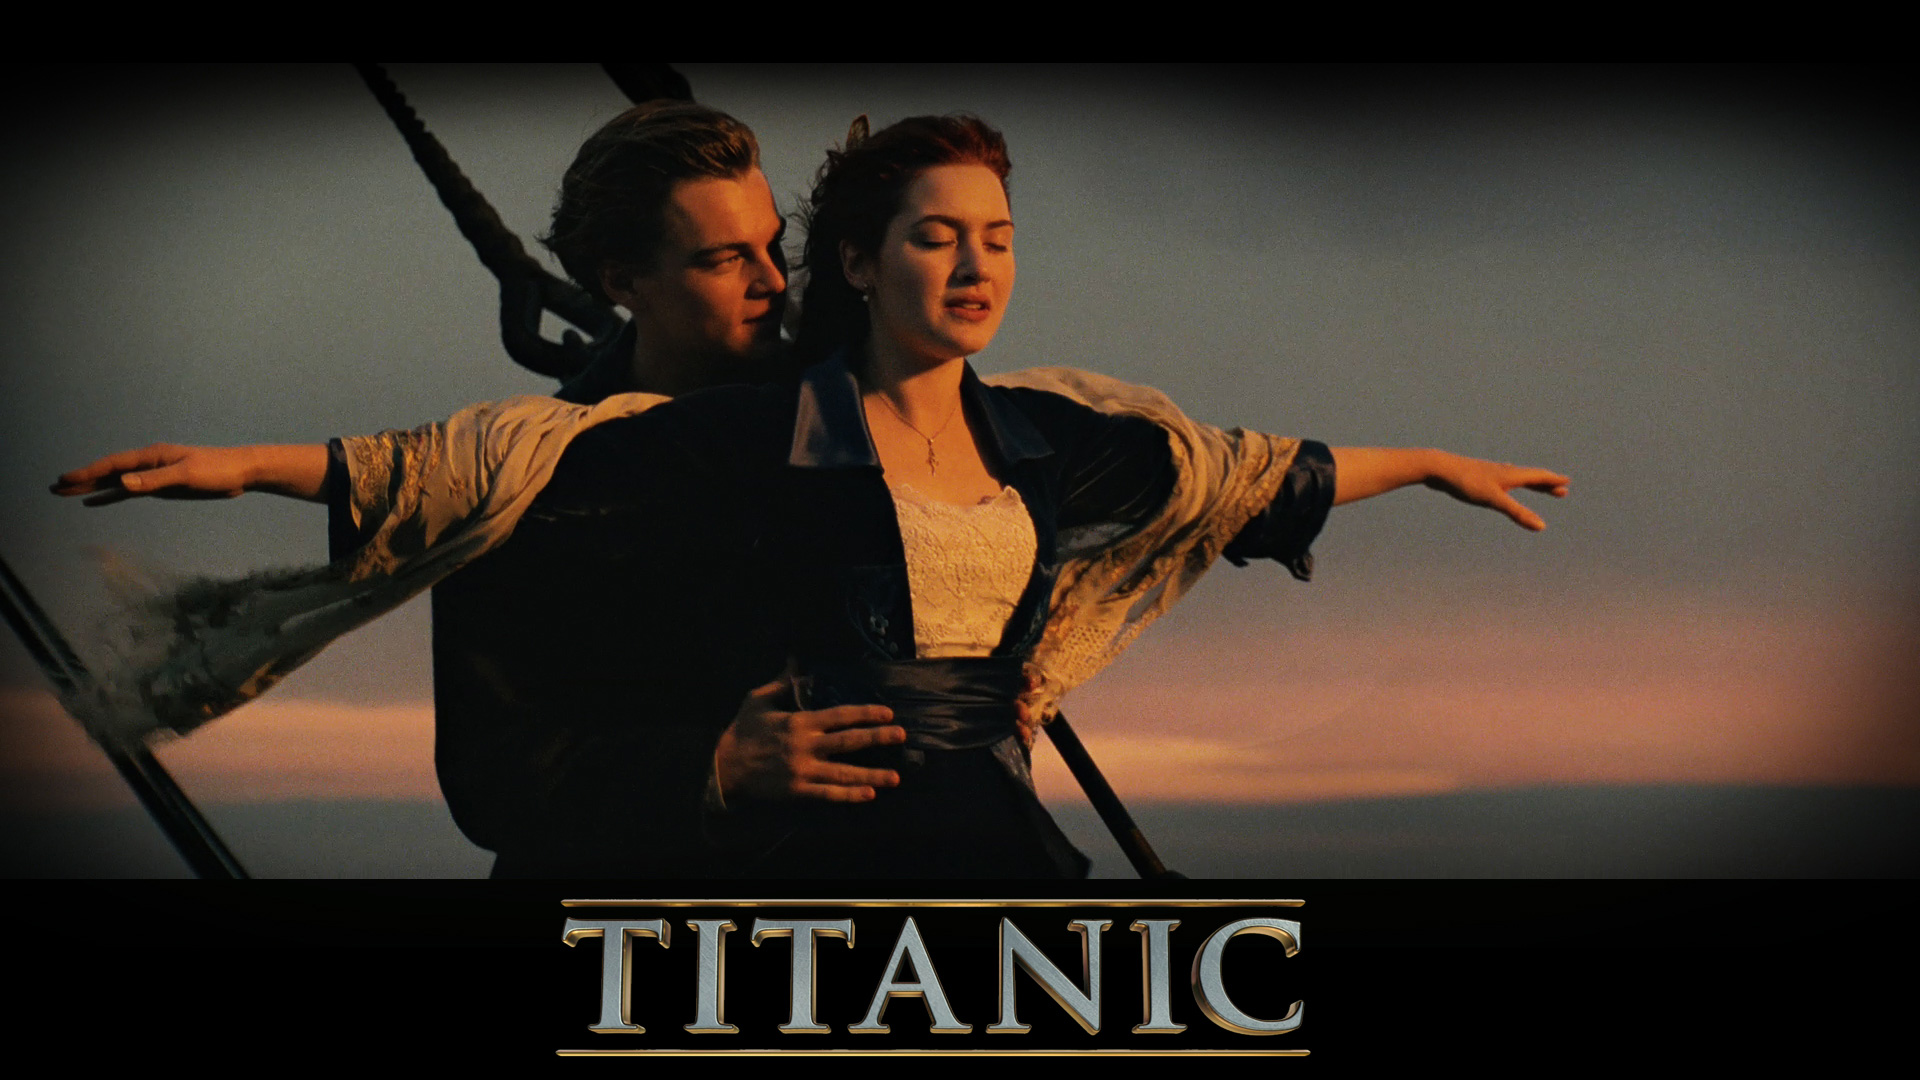 Titanic 3d Wallpaper 2012 Movie HD Desktop Wallpapers 1920x1080